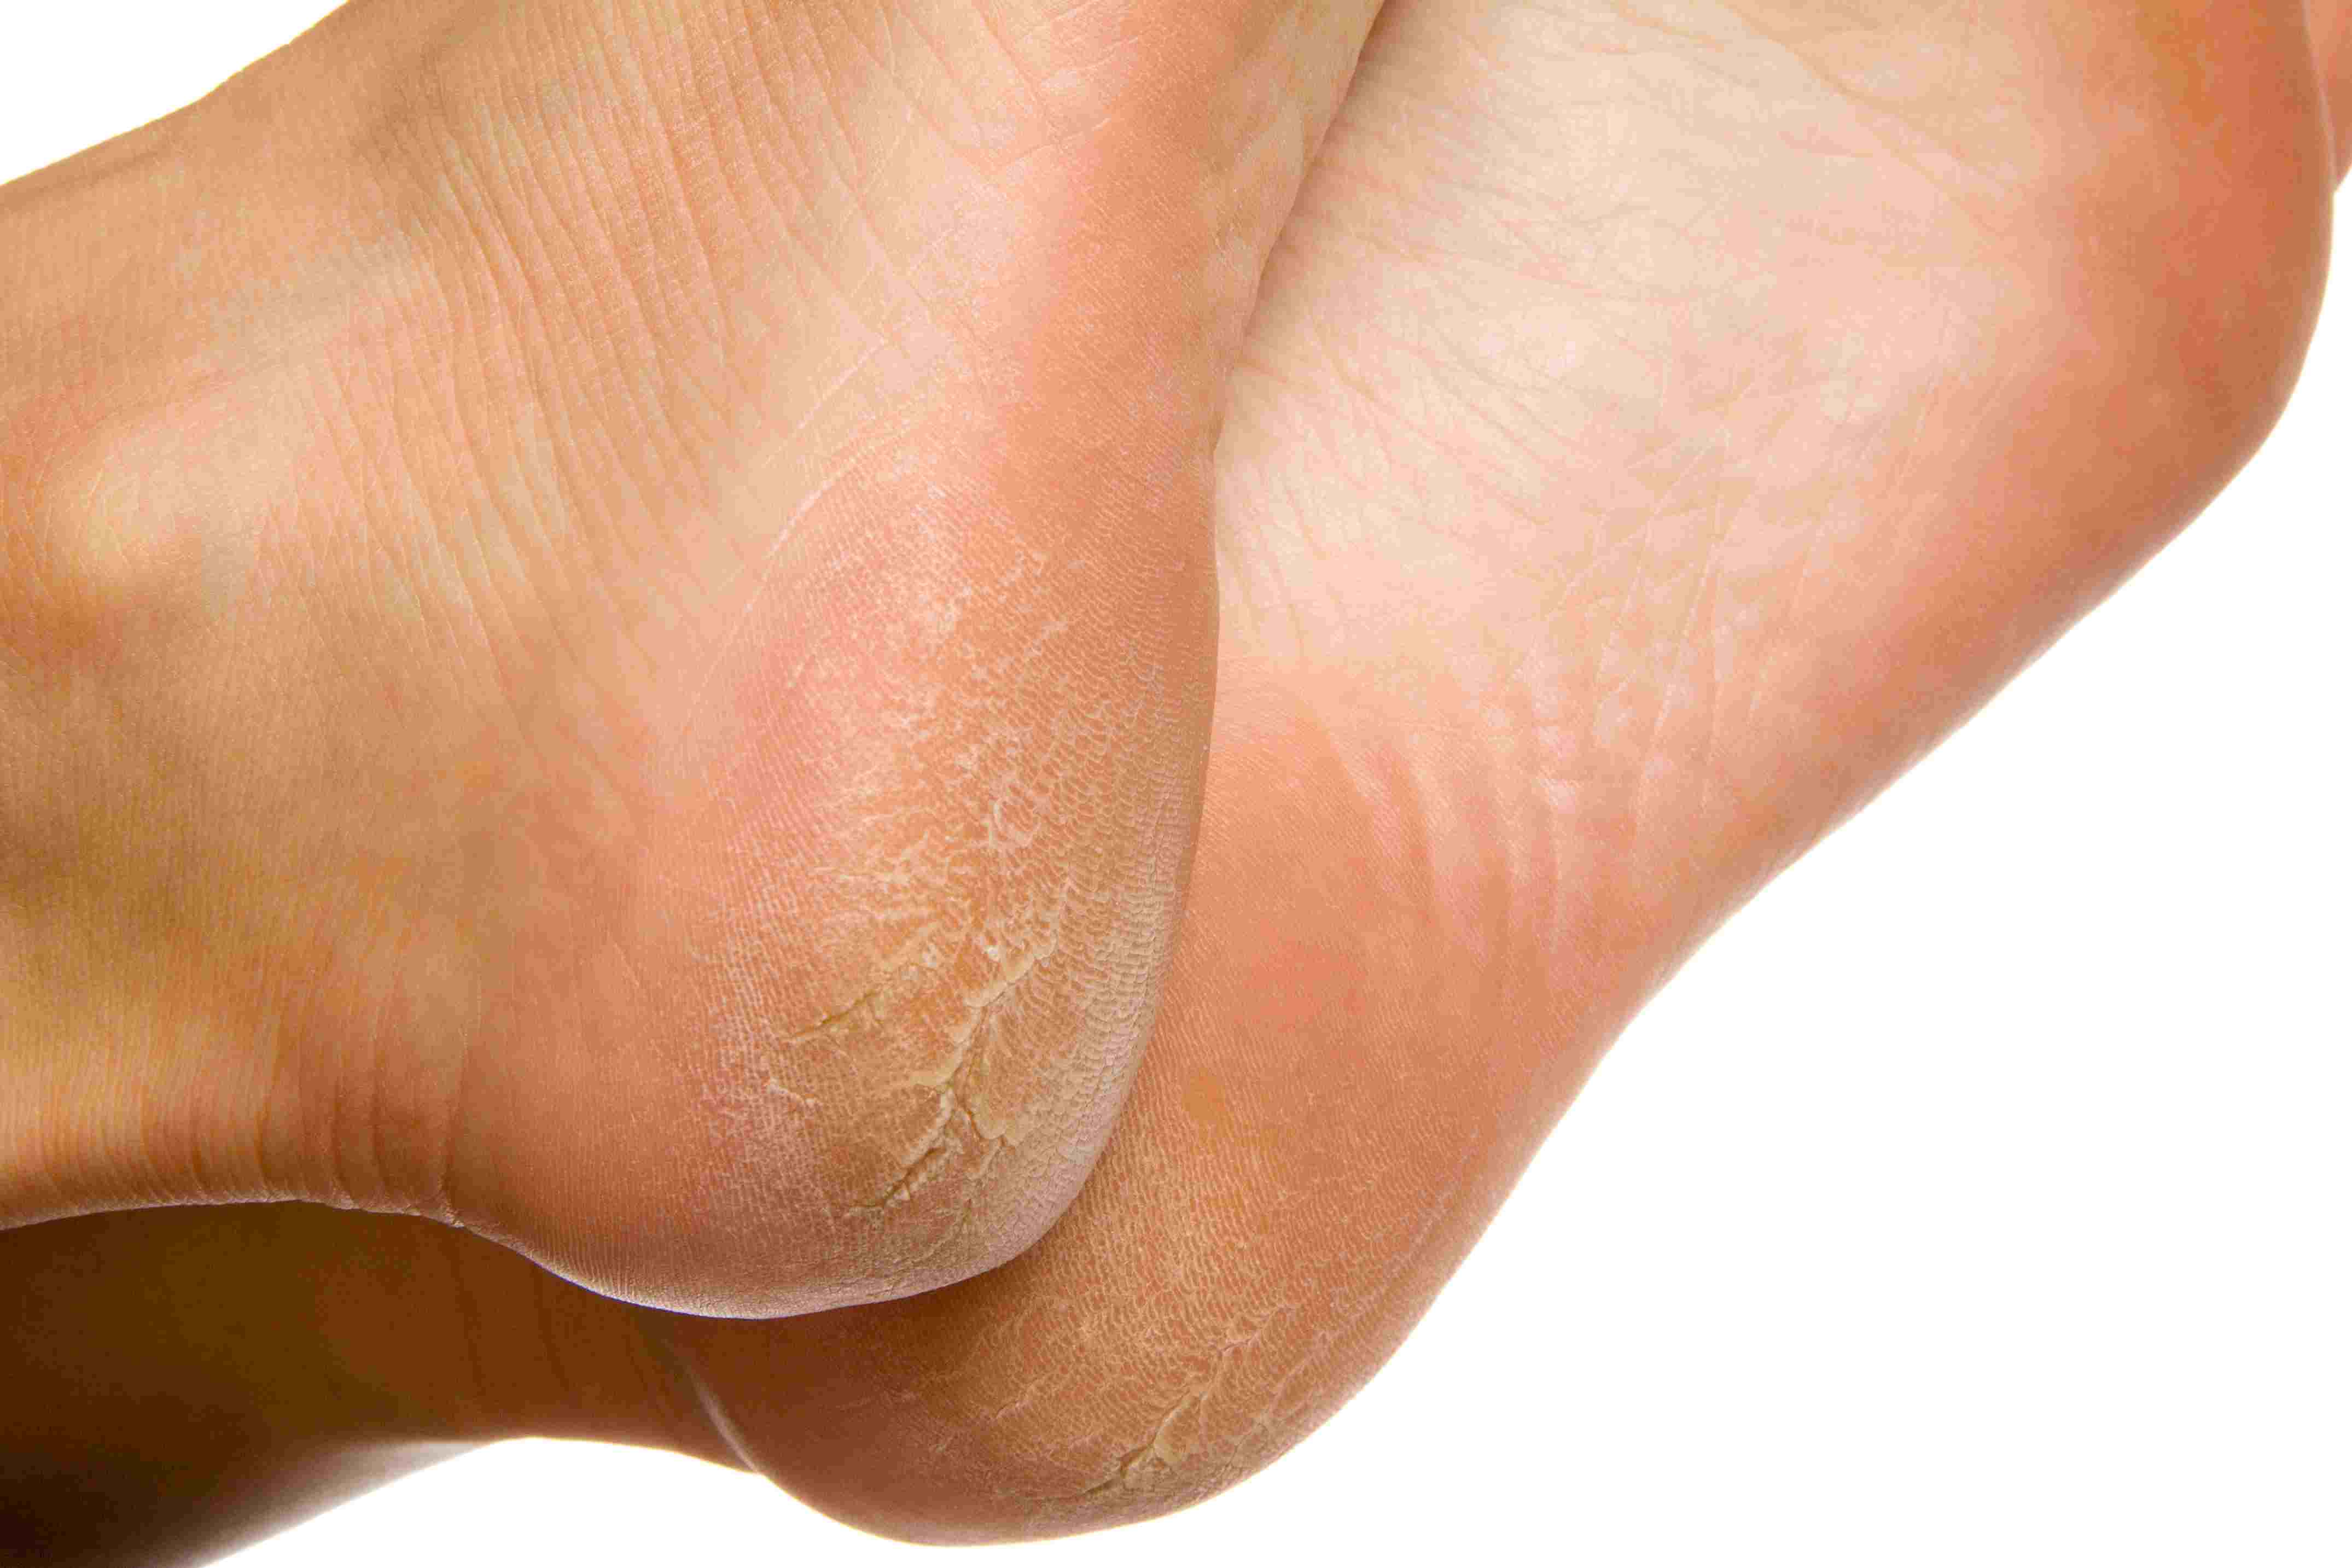 wart under foot symptoms paraziti intestinali la caini tratament naturist